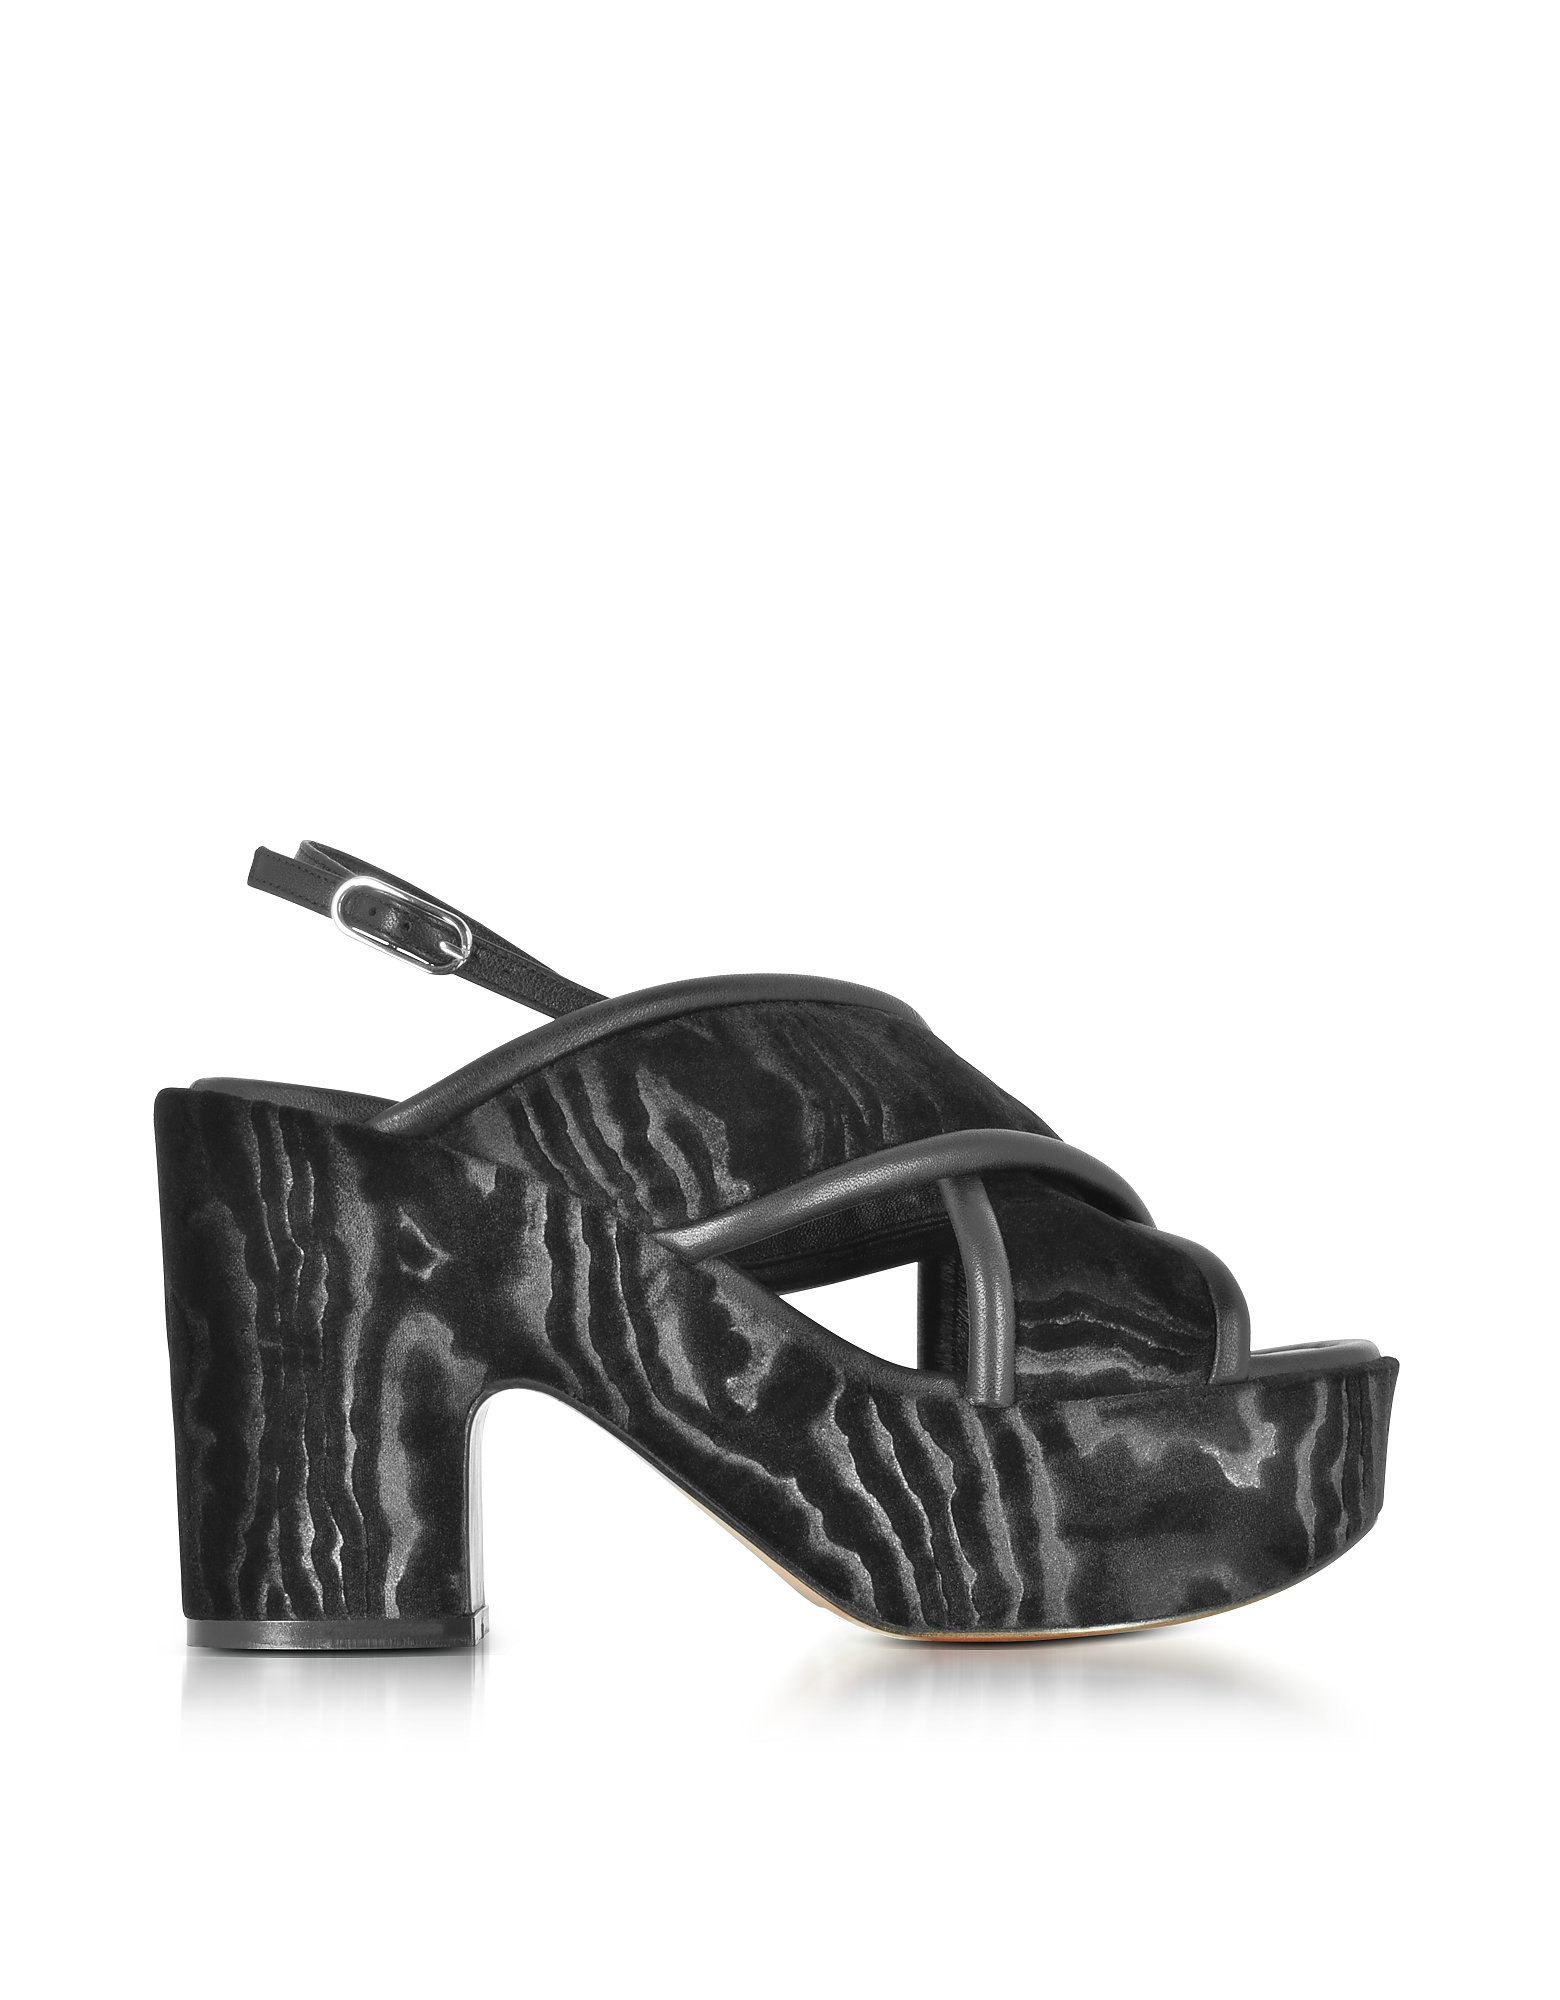 Robert Clergerie Shoes, Emelinet Black Velvet Wedge Sandals